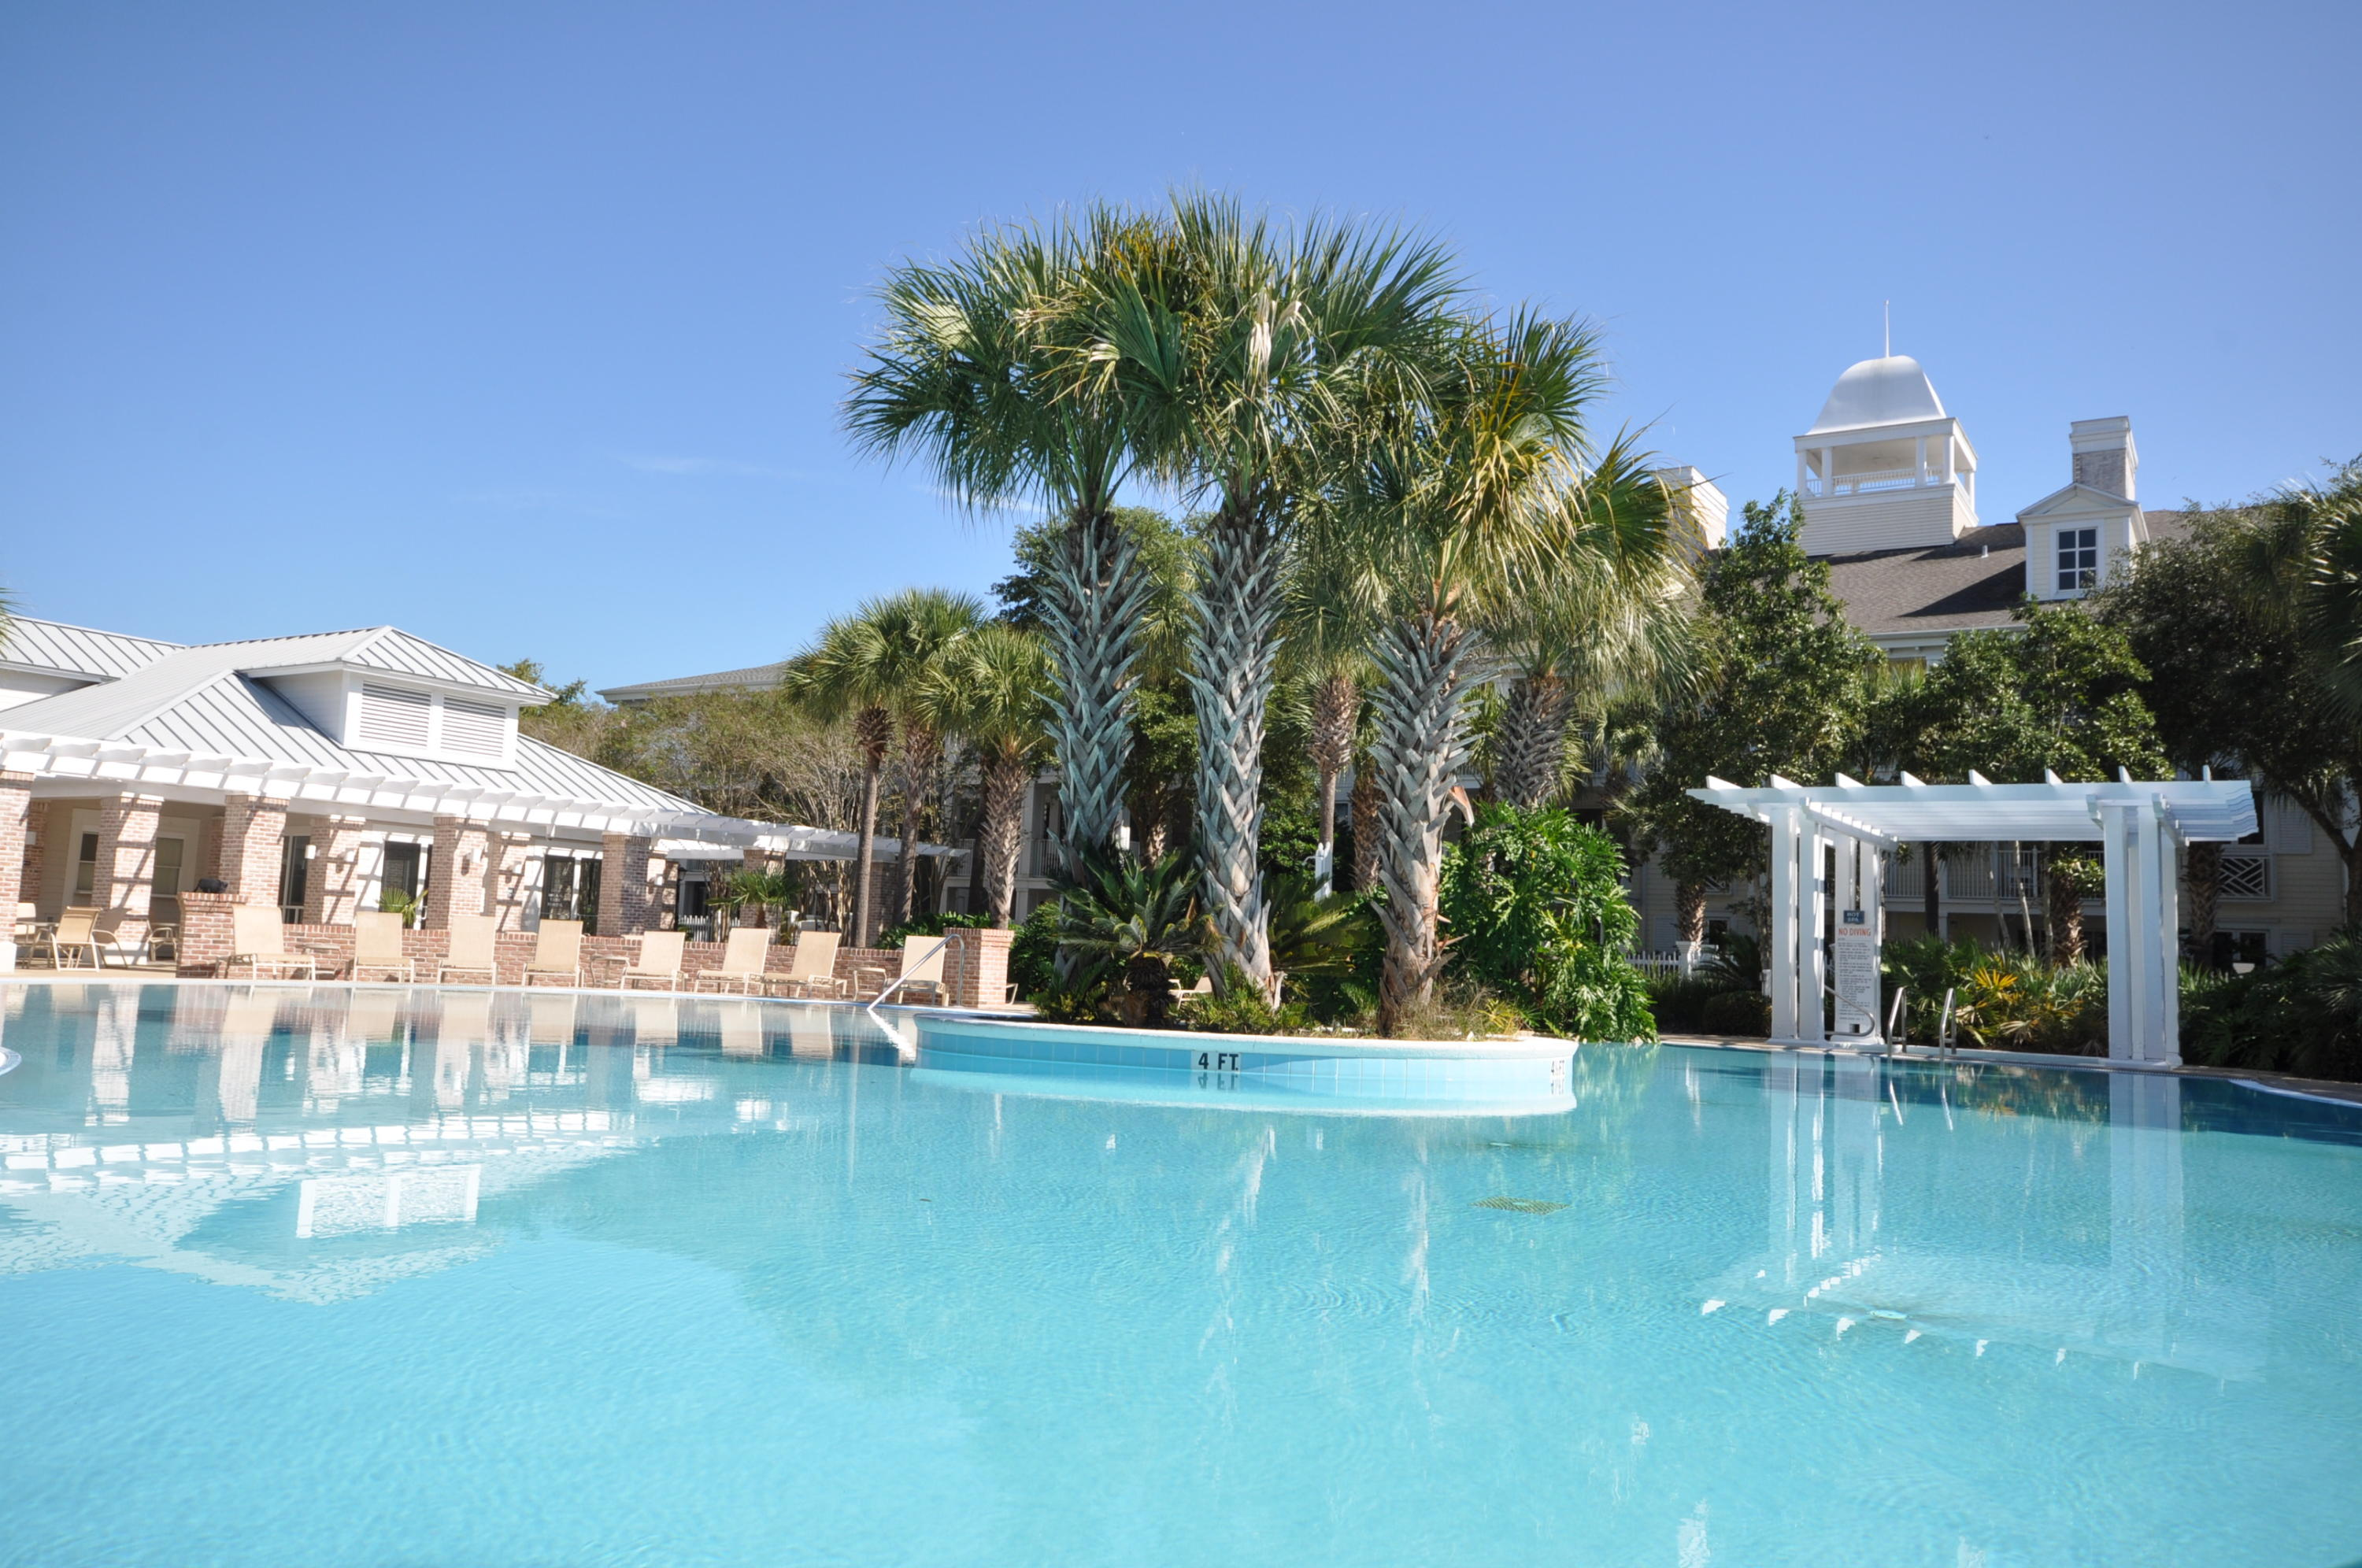 """$5000 PRICE REDUCTION on this POOL LEVEL condo with all tile floors sleeps 8.  Rental projections of $21,000 - $23,000 annually! Pilot House is located in the Village of Baytowne Wharf offering dining and entertainment options for all ages within Sandestin Golf and Beach Resort, a wonderful place to make memories with family and friends.  Pilot House owners also have access to the Founder's Club Room, a gathering spot for larger groups with bar and pool table, TVs, etc. Sandestin owners have access to the private owners' beach, 2 pools, tennis and 3 golf courses as well as a grocery store, many restaurants, movies, and even Sacred Heart Hospital without having to get on Highway 98.  This 3rd level condo is so convenient to the pool, fitness center and green space as well as parking below. As an introduction to the Sandestin lifestyle, we invite our new owners to explore amenities that make Sandestin special. The listing brokerage and seller(s) are presenting the buyer(s) of this property with (2) 90-minute rounds of Tennis court time, a golf foursome at one of our three championship courses, a round of golf for up to four (4) players and an invitation to """"Club Night"""" at the unrivaled Burnt Pine Golf Club.  Sandestin Golf and Beach Resort is a major destination for all seasons and all ages, and has been named the #1 resort on Florida's Emerald Coast. This magical resort spanning over 2,000 acres is comprised of over 70 unique neighborhoods of condominiums, villas, town homes, and estates.  The resort features miles of sandy white beaches and pristine bay front, four championship golf courses, a world-class tennis center with 15 courts, 4 resort swimming pools (and 15 private neighborhood pools), a 113-slip marina, a fully equipped and professionally staffed fitness center and spa, meeting spaces and The Village of Baytowne Wharf, a charming pedestrian village with events, shopping, dining, family entertainment and nightlife. For true golf cart community living, Grand"""